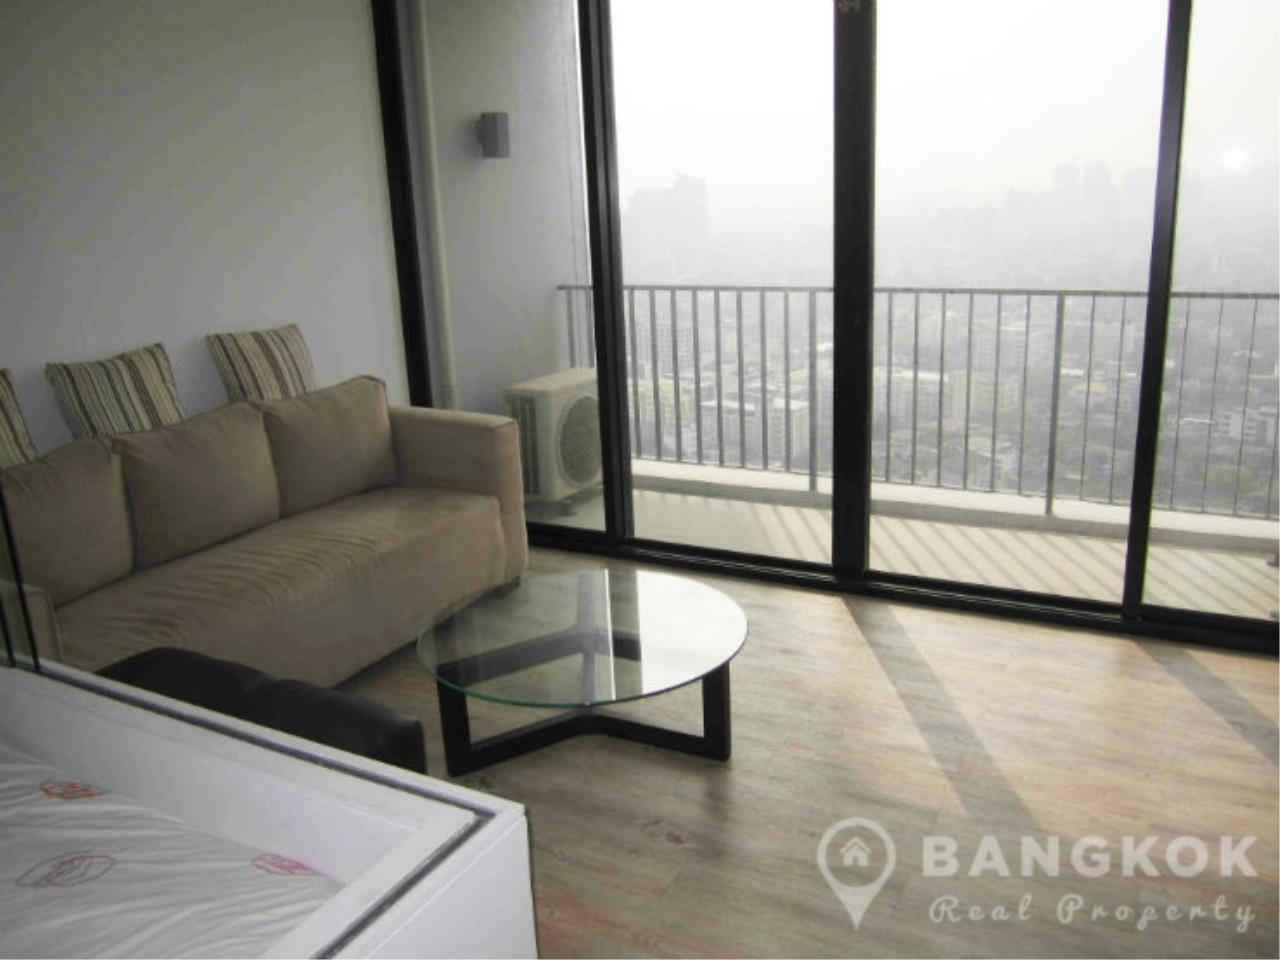 Bangkok Real Property Agency's Issara Ladprao | Stylish High Floor Studio with Stunning Views 10